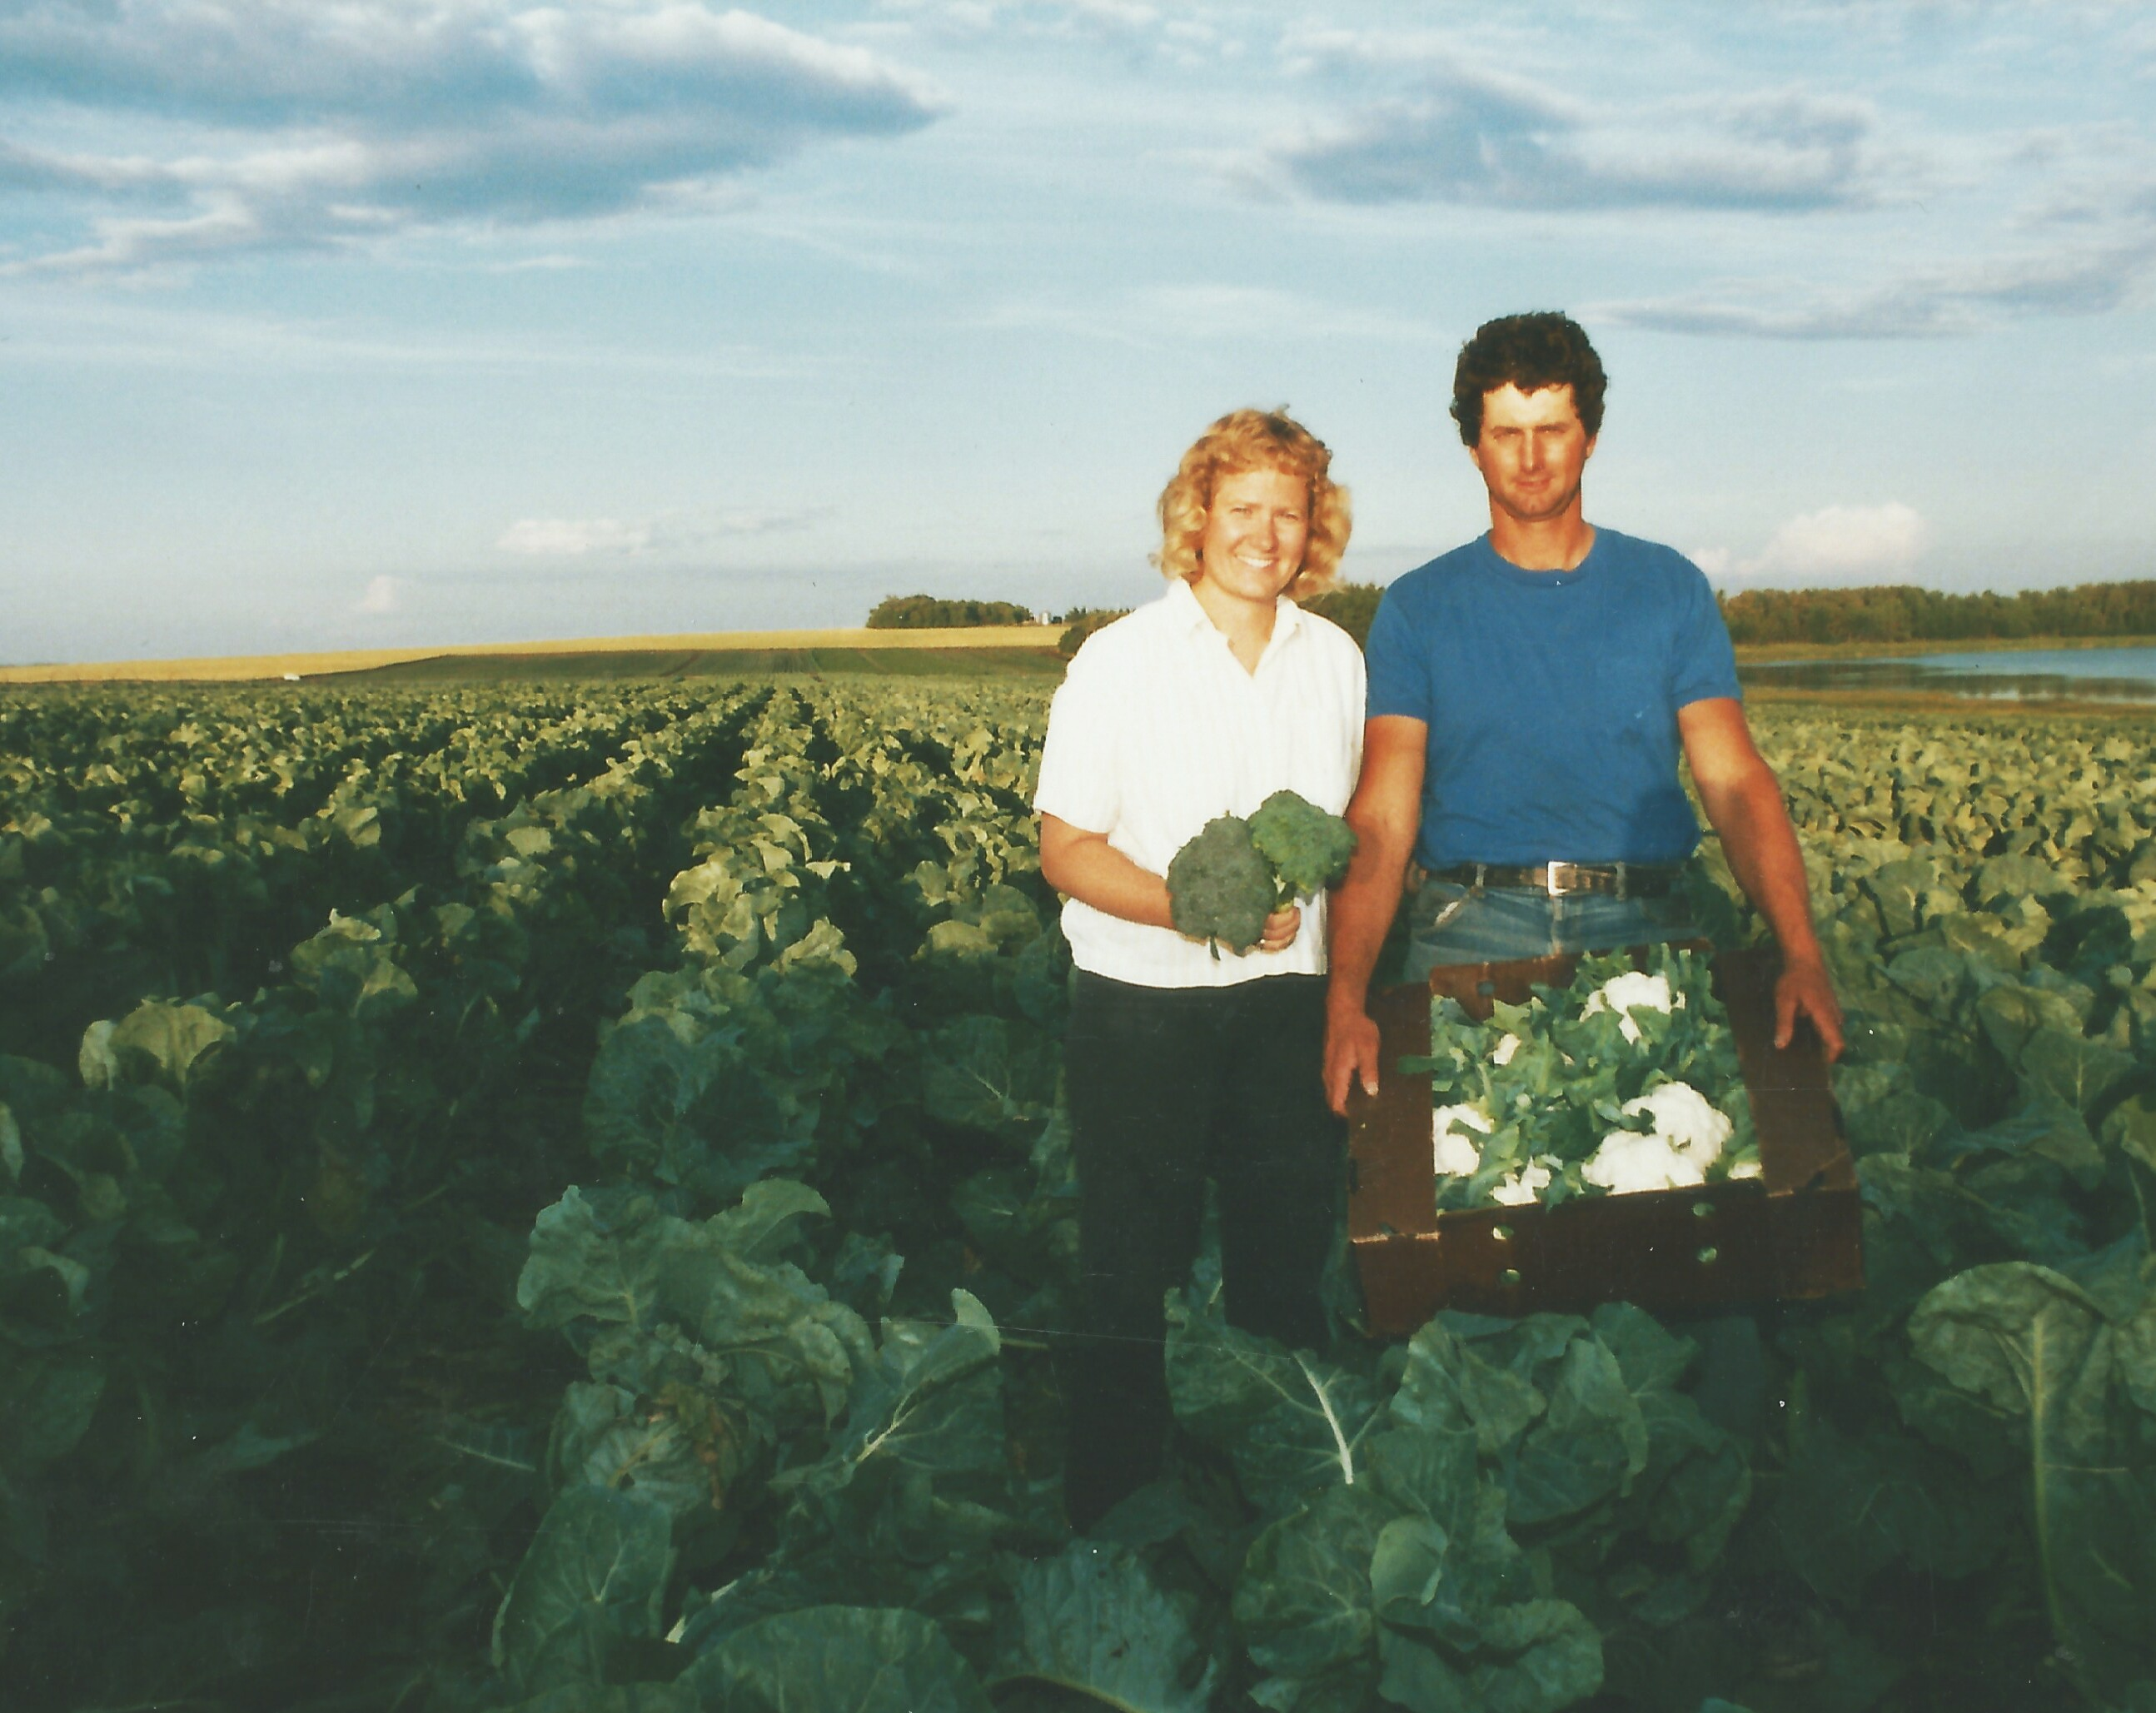 cute farmer couple winnipeg manitoba